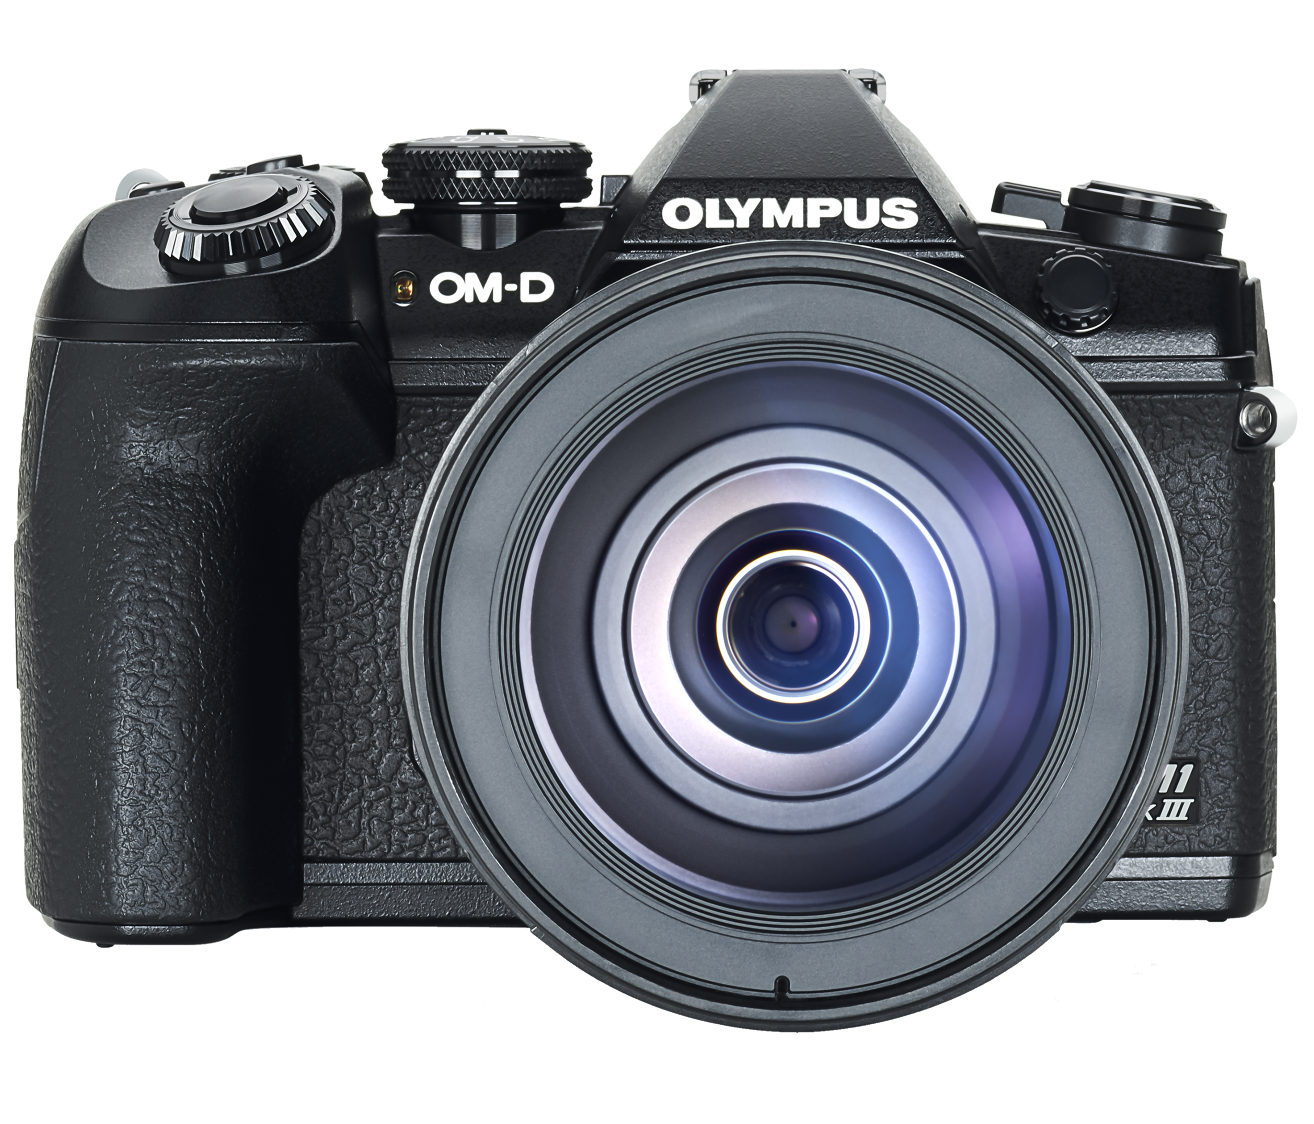 Olympus OM-D E-M1 Mark III with 12-100mm Lens